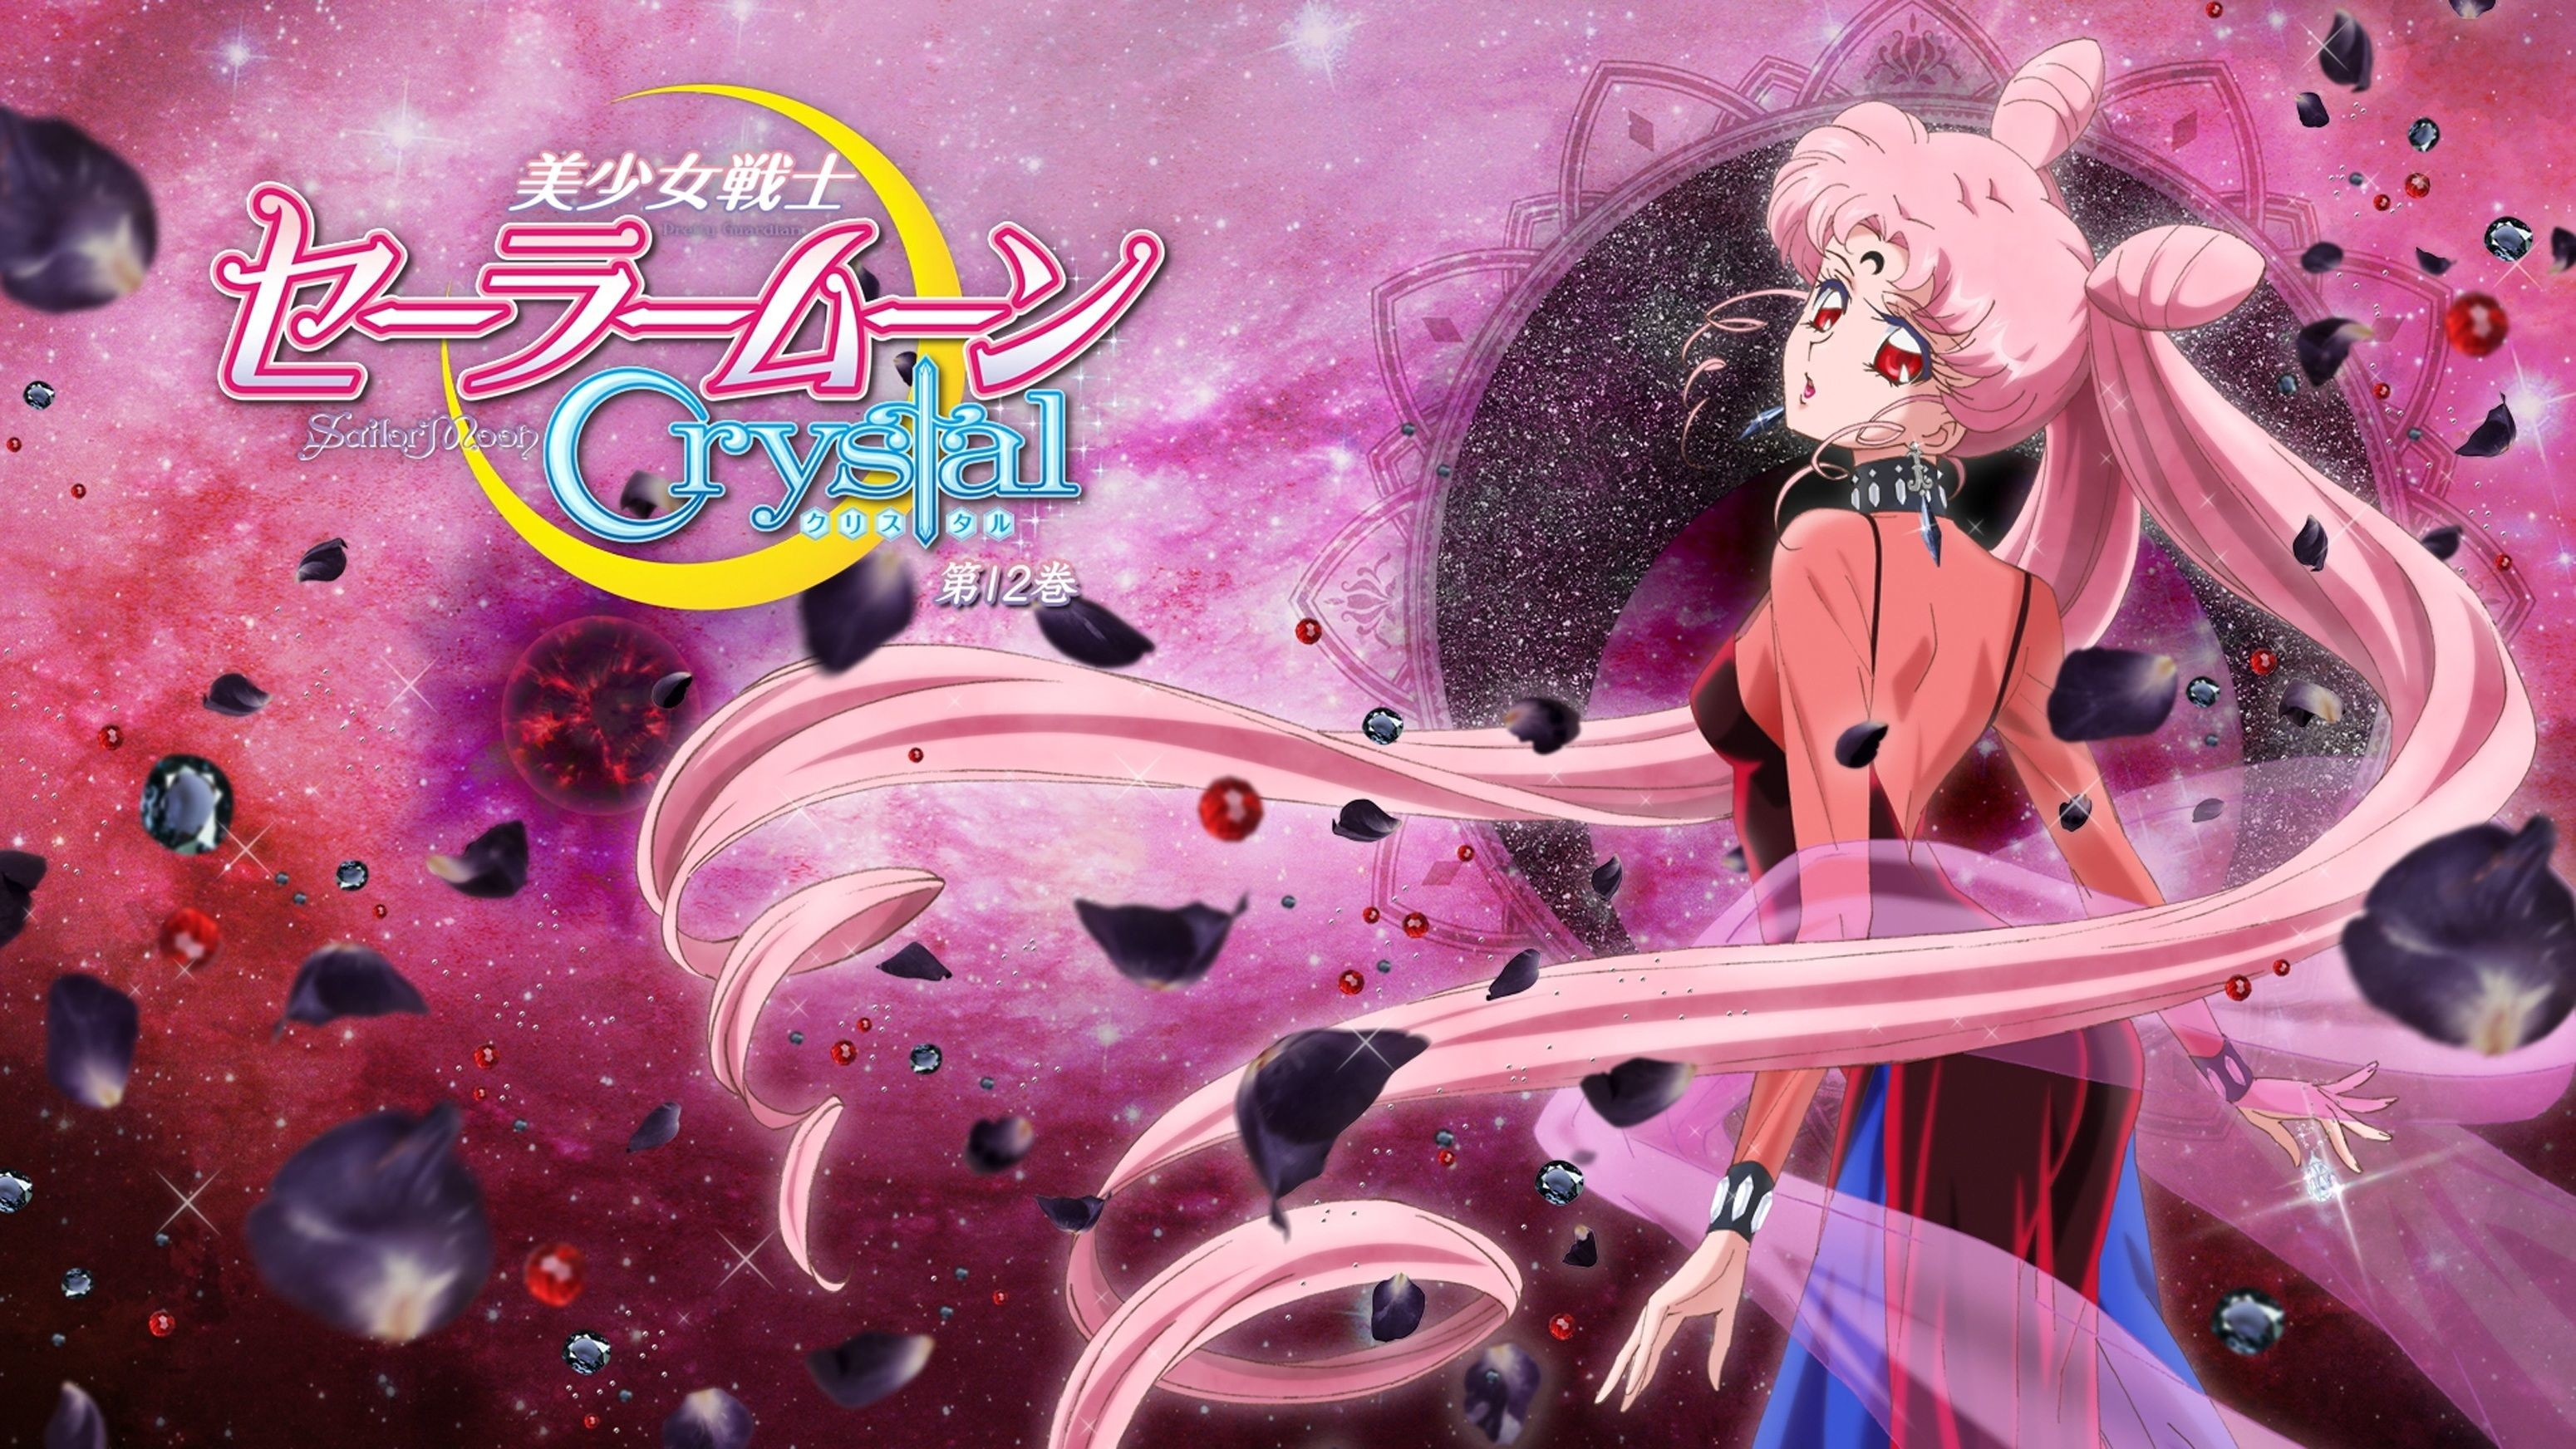 3100x1744 Wallpaper HD Sailor Moon Crystal DVD 12